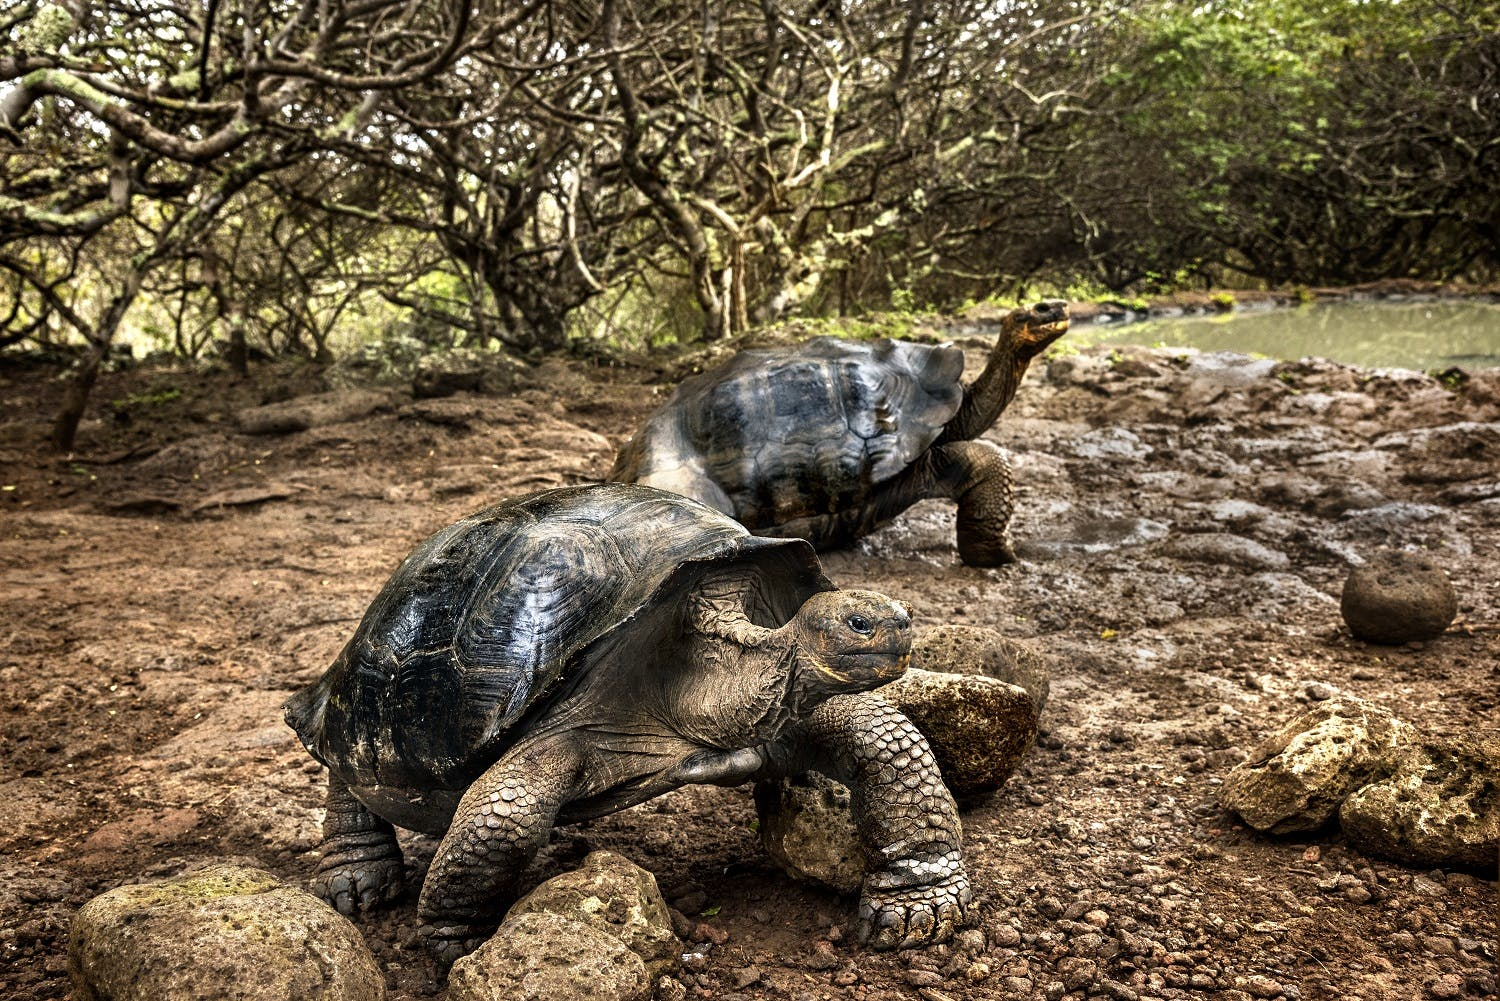 Giant tortoises in the Galapagos Islands by Steve McCurry